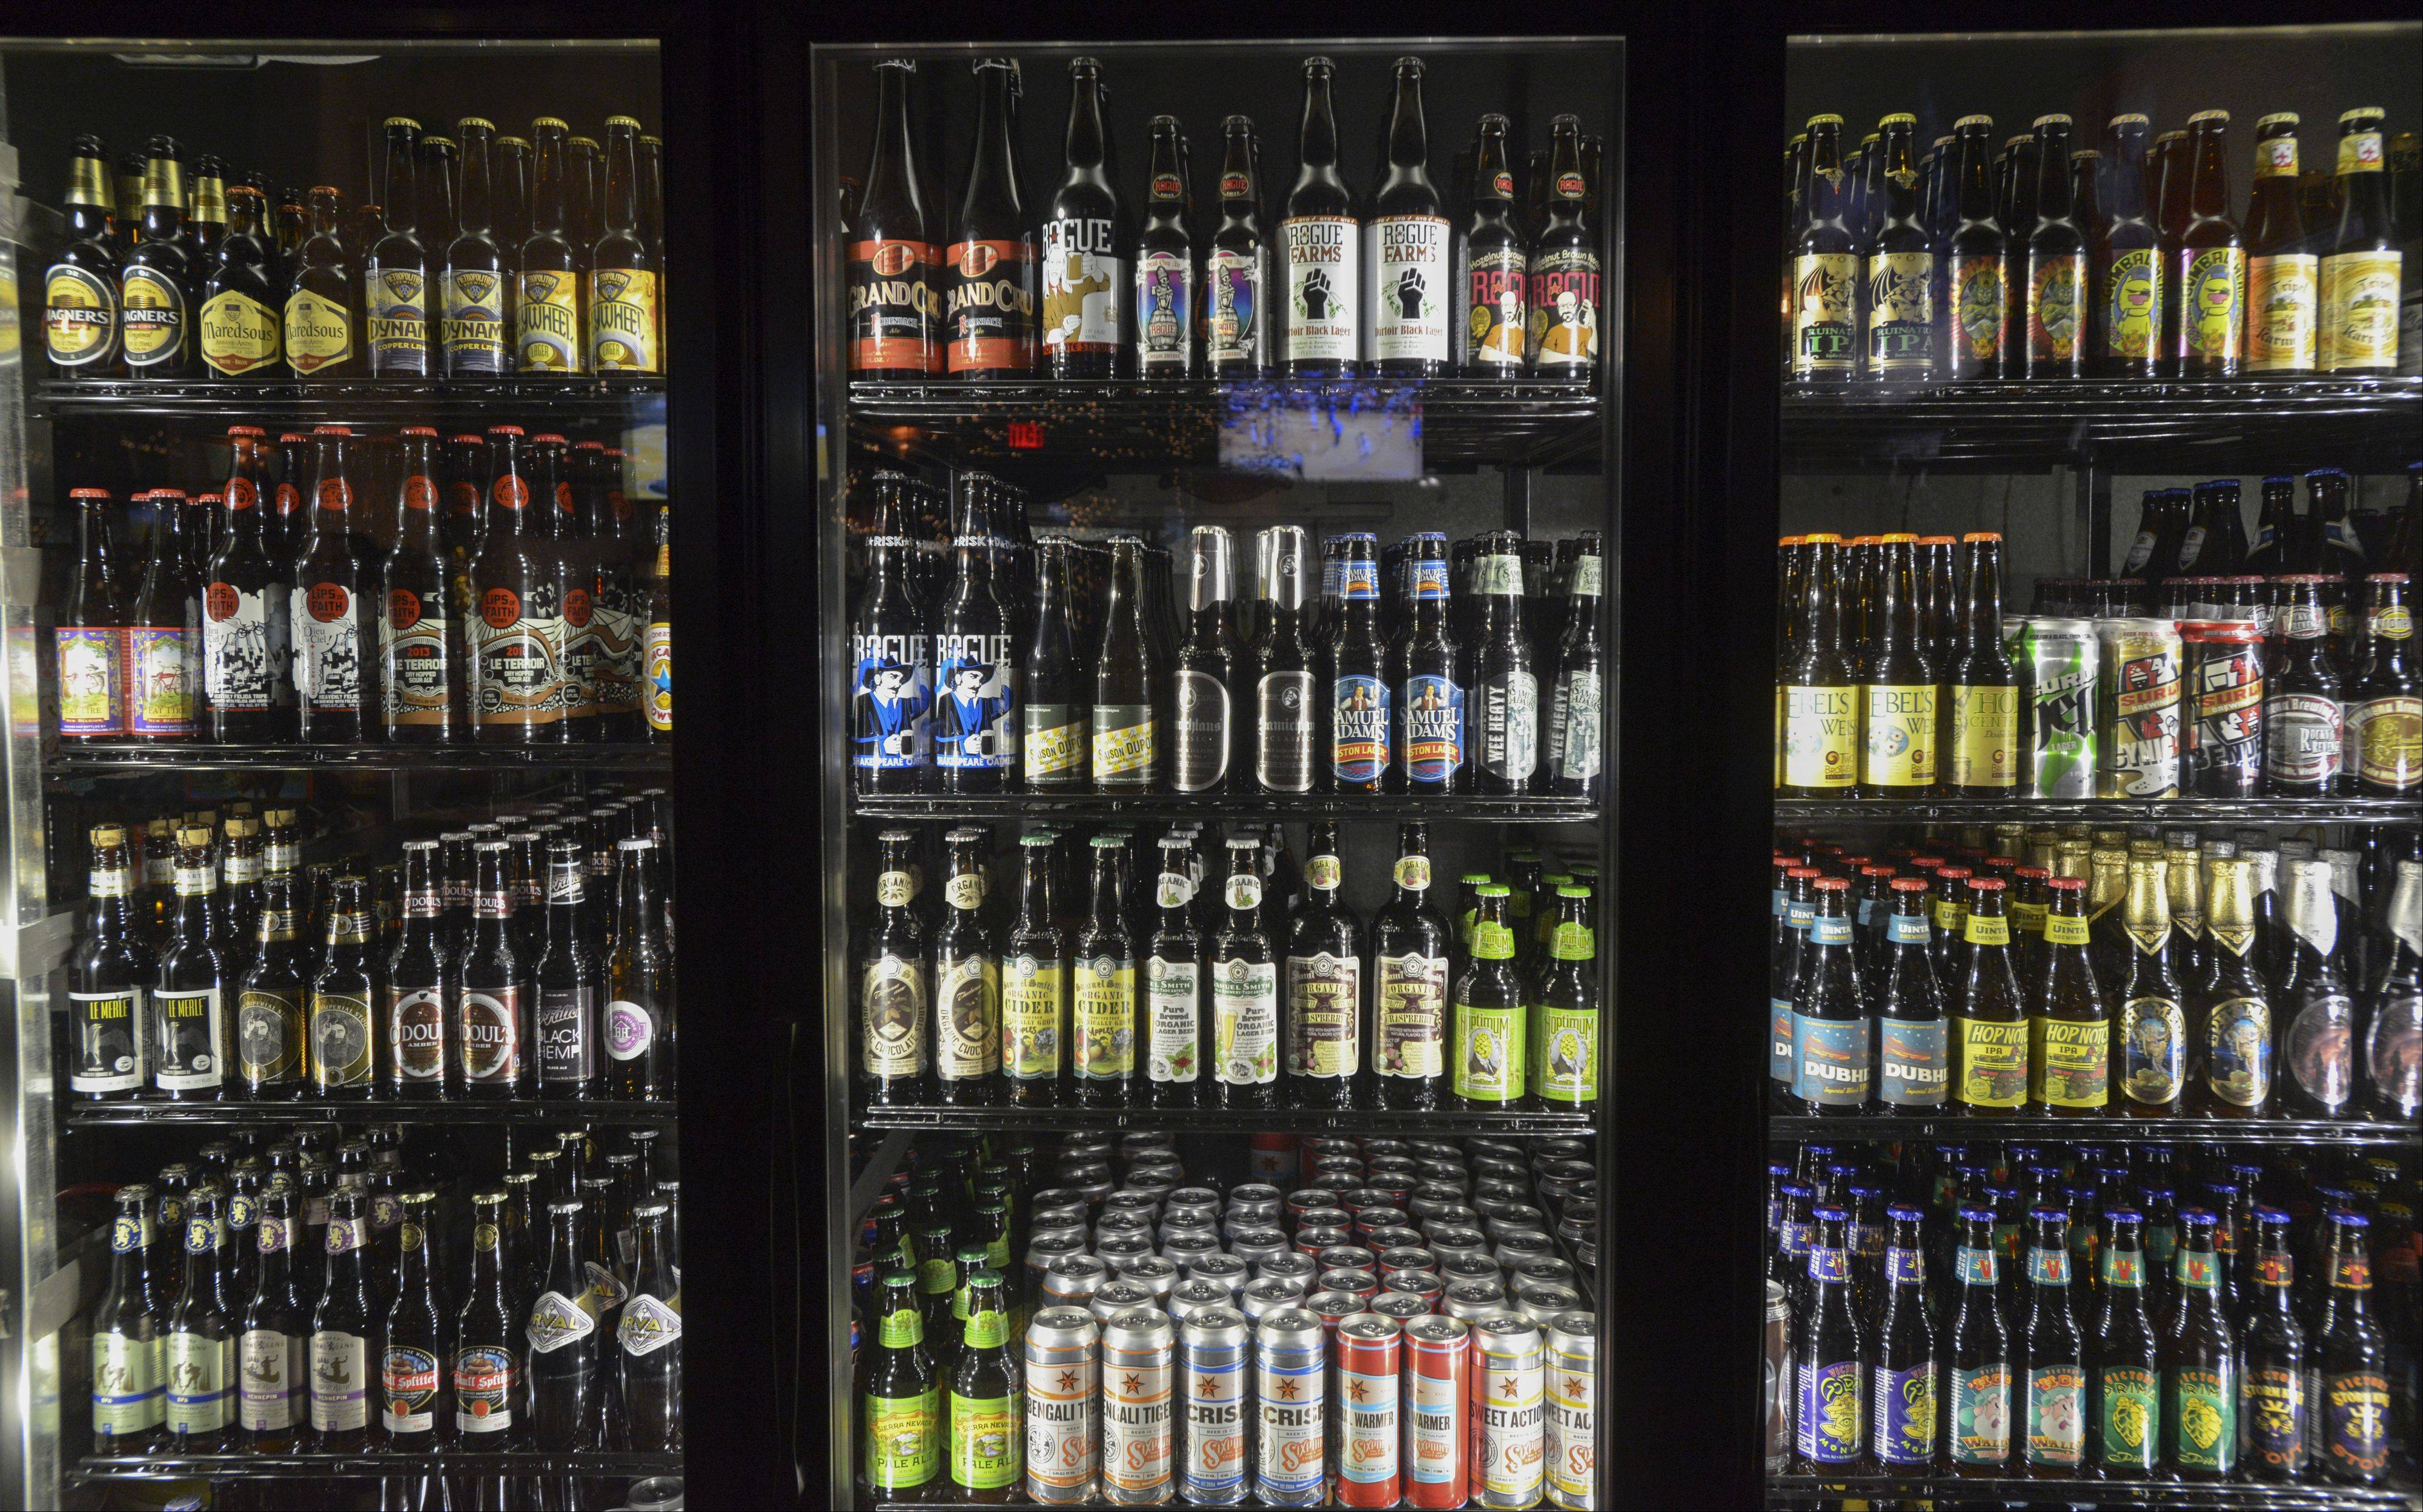 Lombard's Beer House offers more than 300 beers by the bottle.